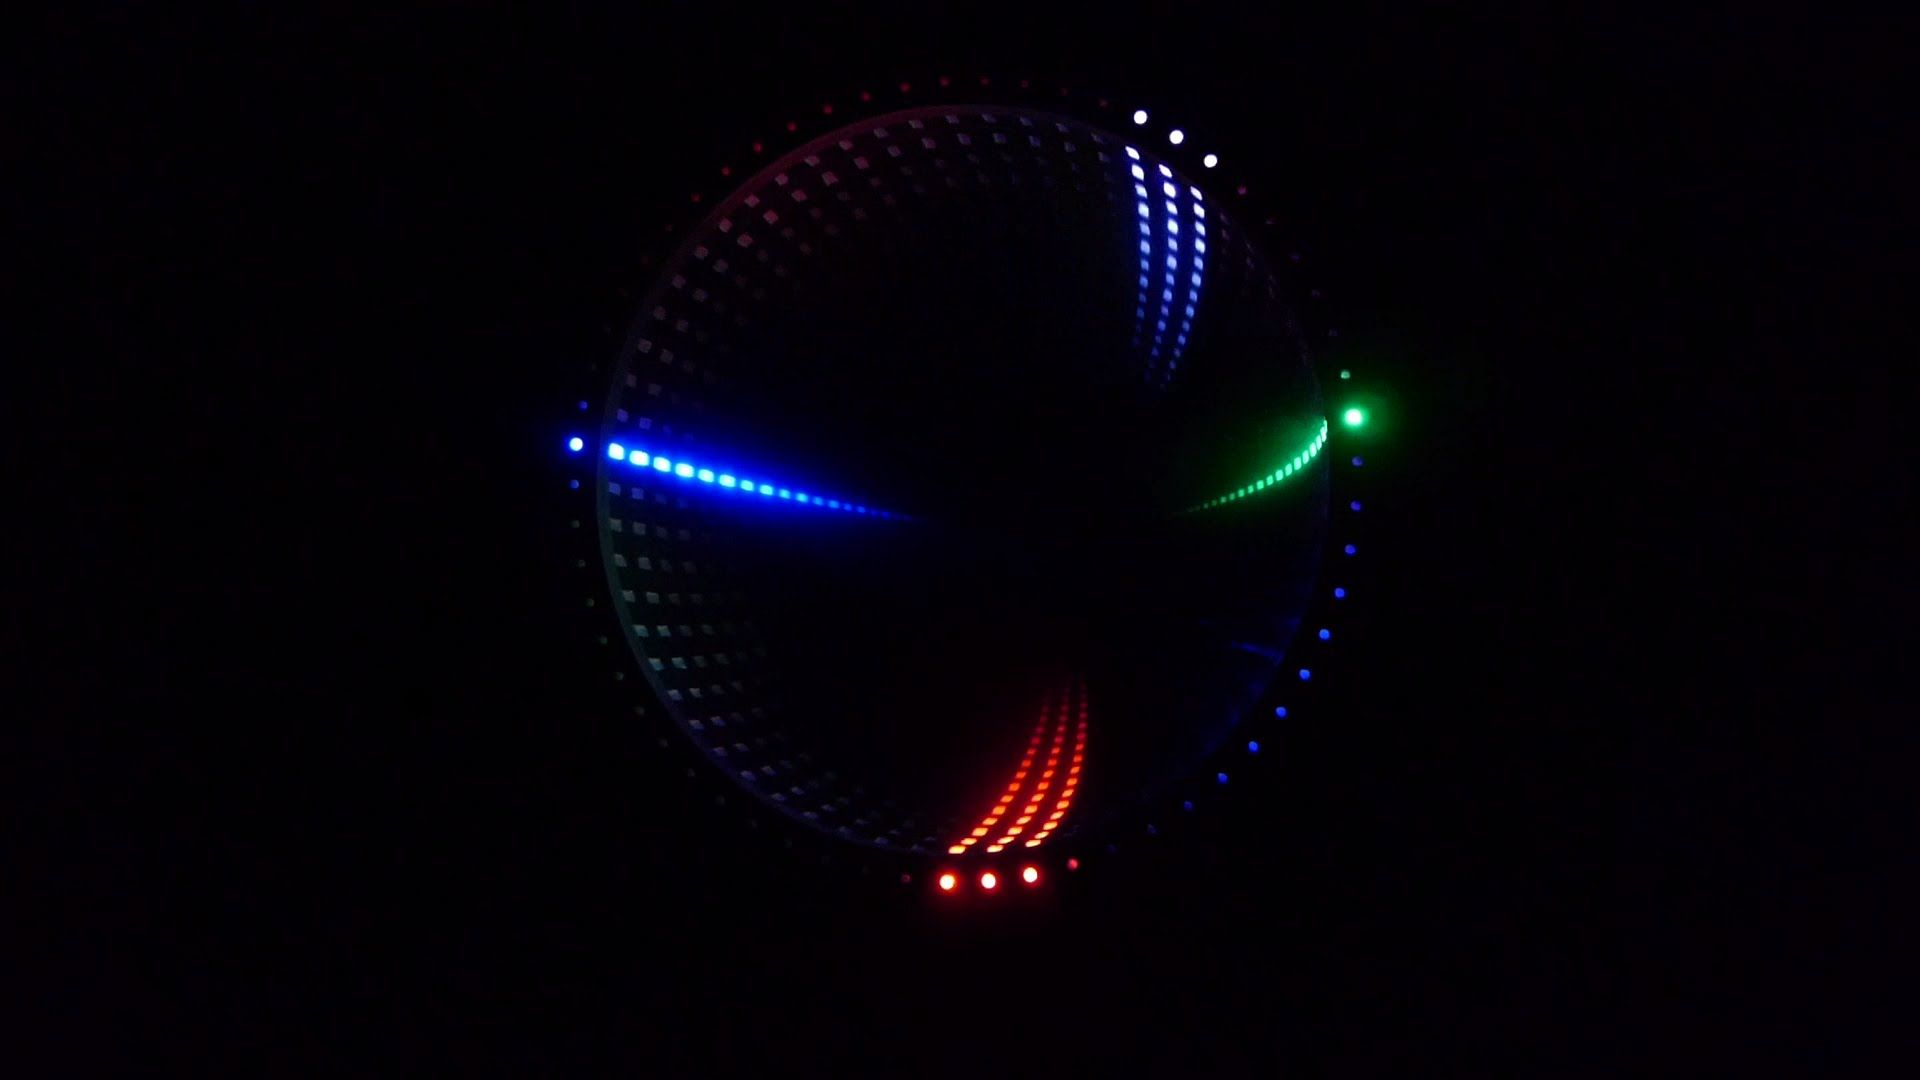 Pin By Young Kimberly On My New Led Eco Friendly Product Design Control Leds Off With Ir Remote And Arduino P Marian Infrared Infinity Mirror Clock An Open Source Project Billiondollarbabybiz